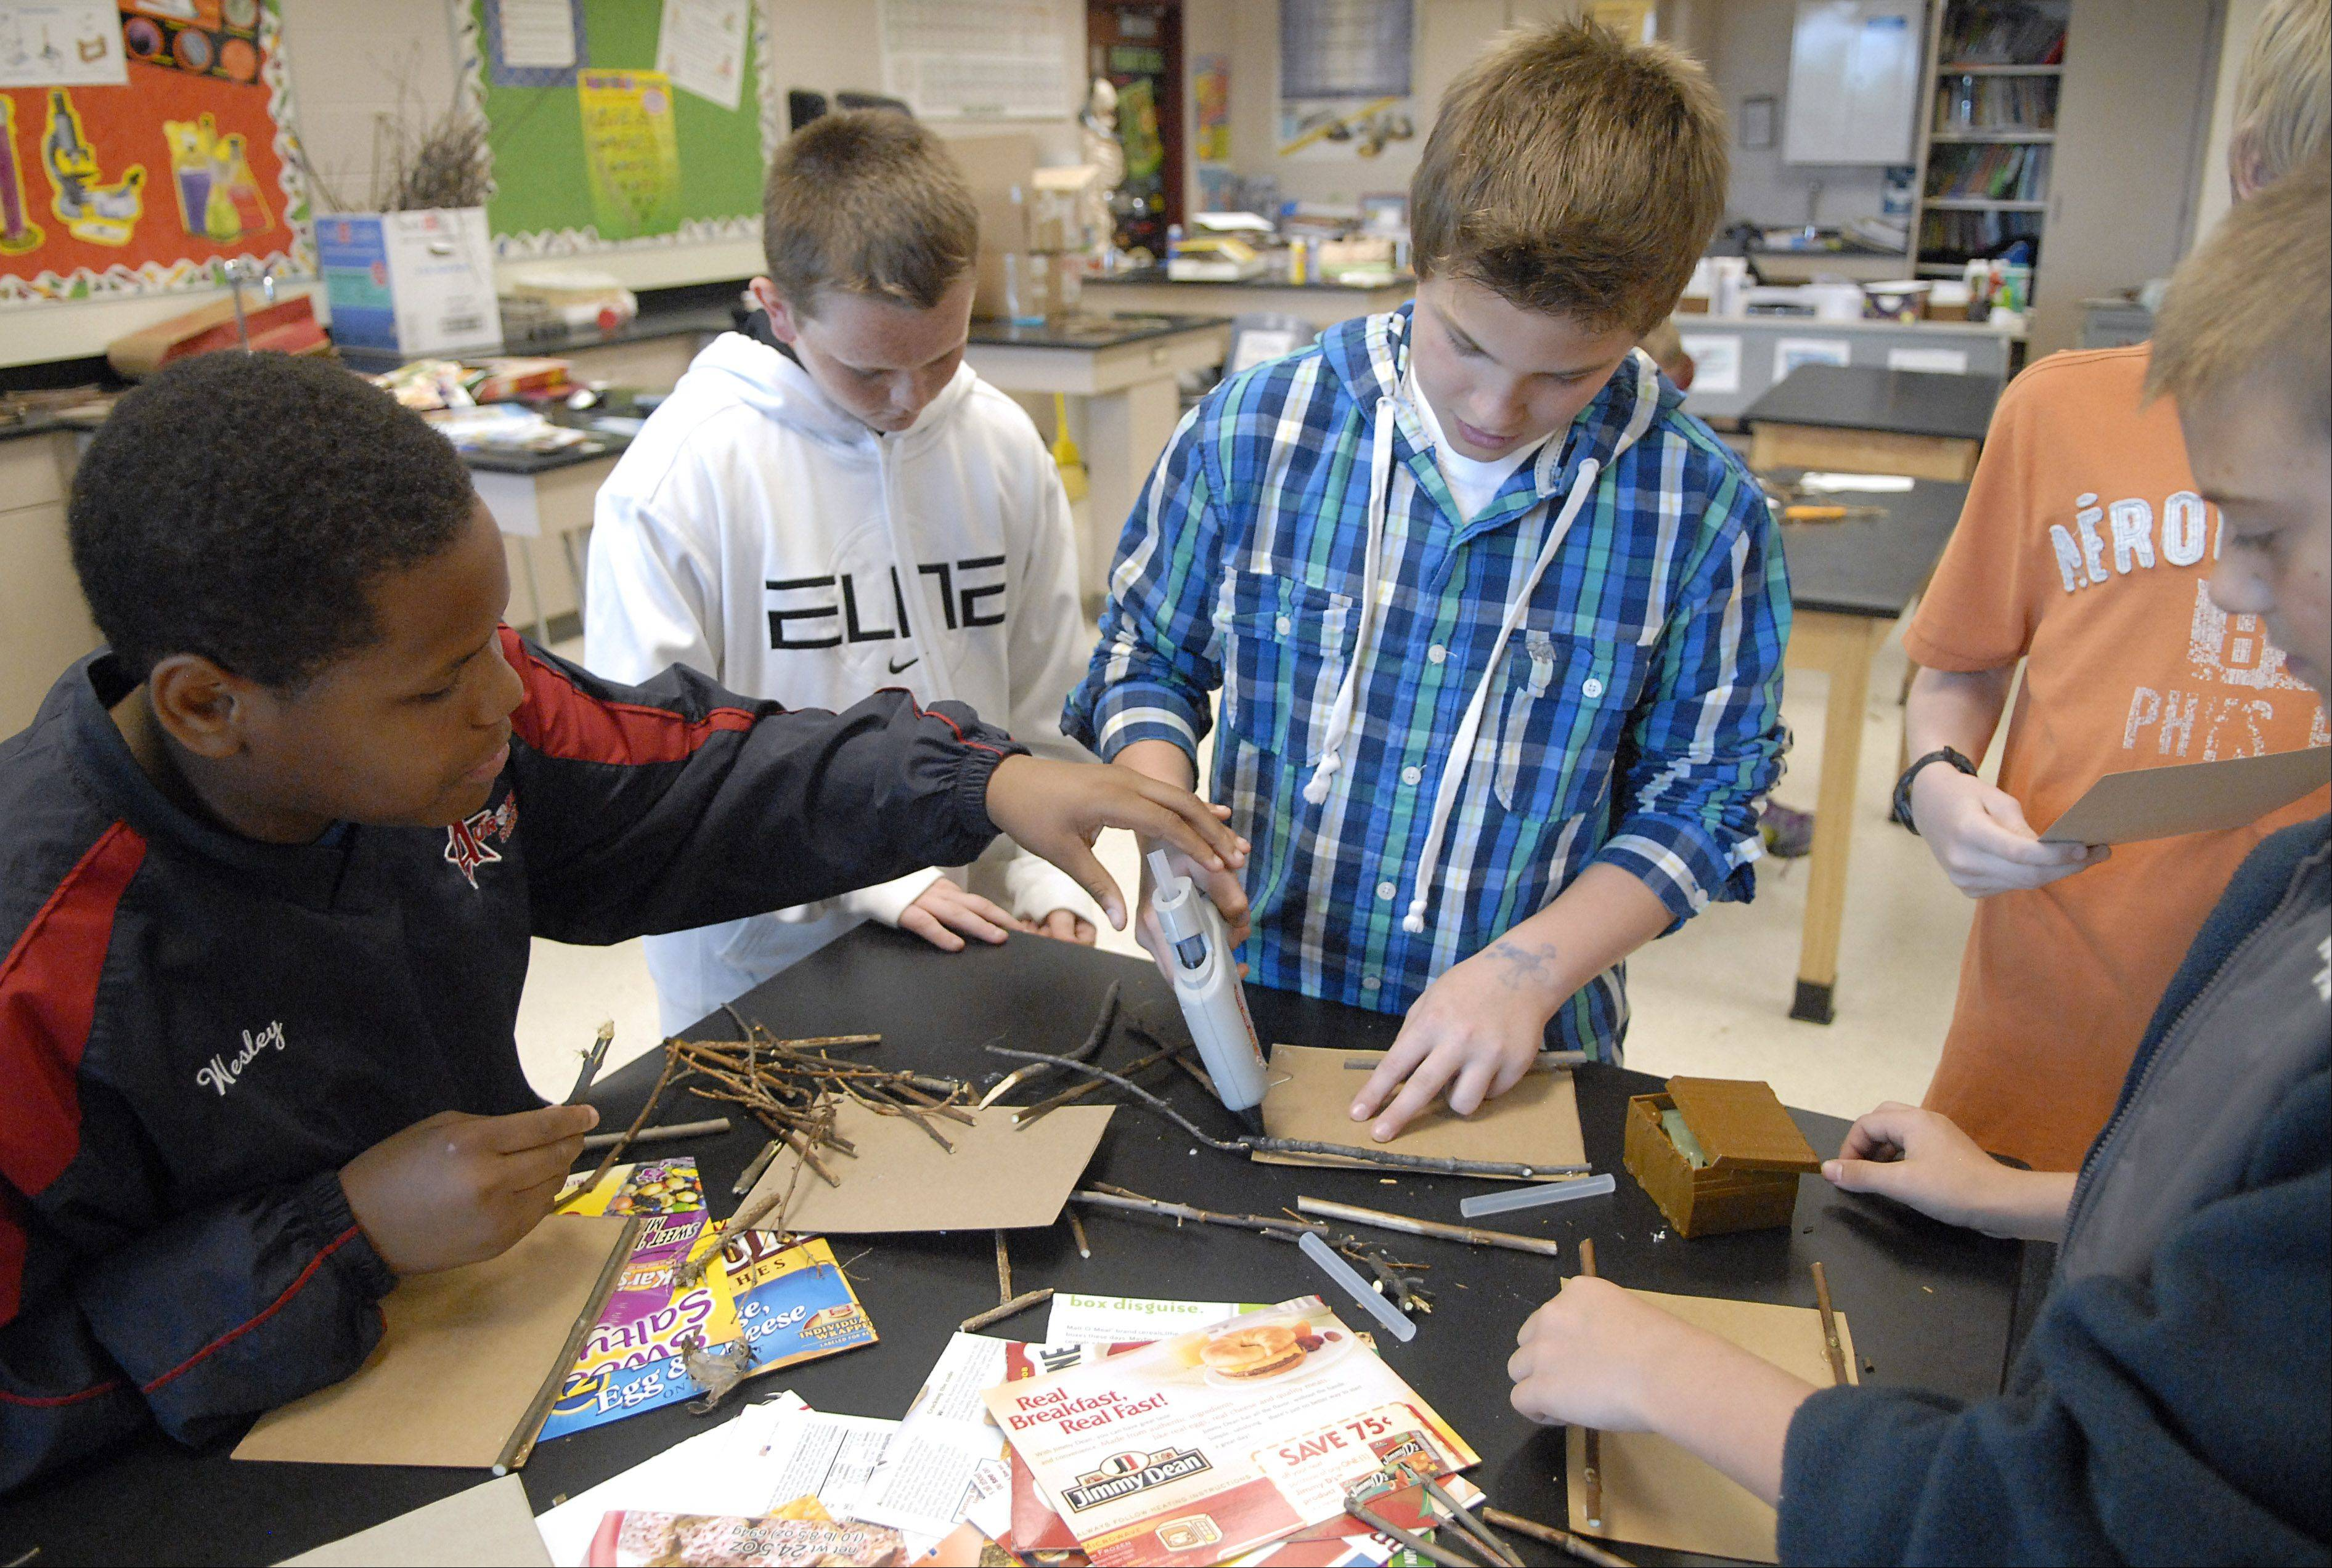 Prince Wesley, Kevin Huck, and Travis French, all 13, take turns using a hot glue gun to glue sticks onto cardboard to make a picture frame during their Earth Day celebration activities Friday at Geneva Middle School North.